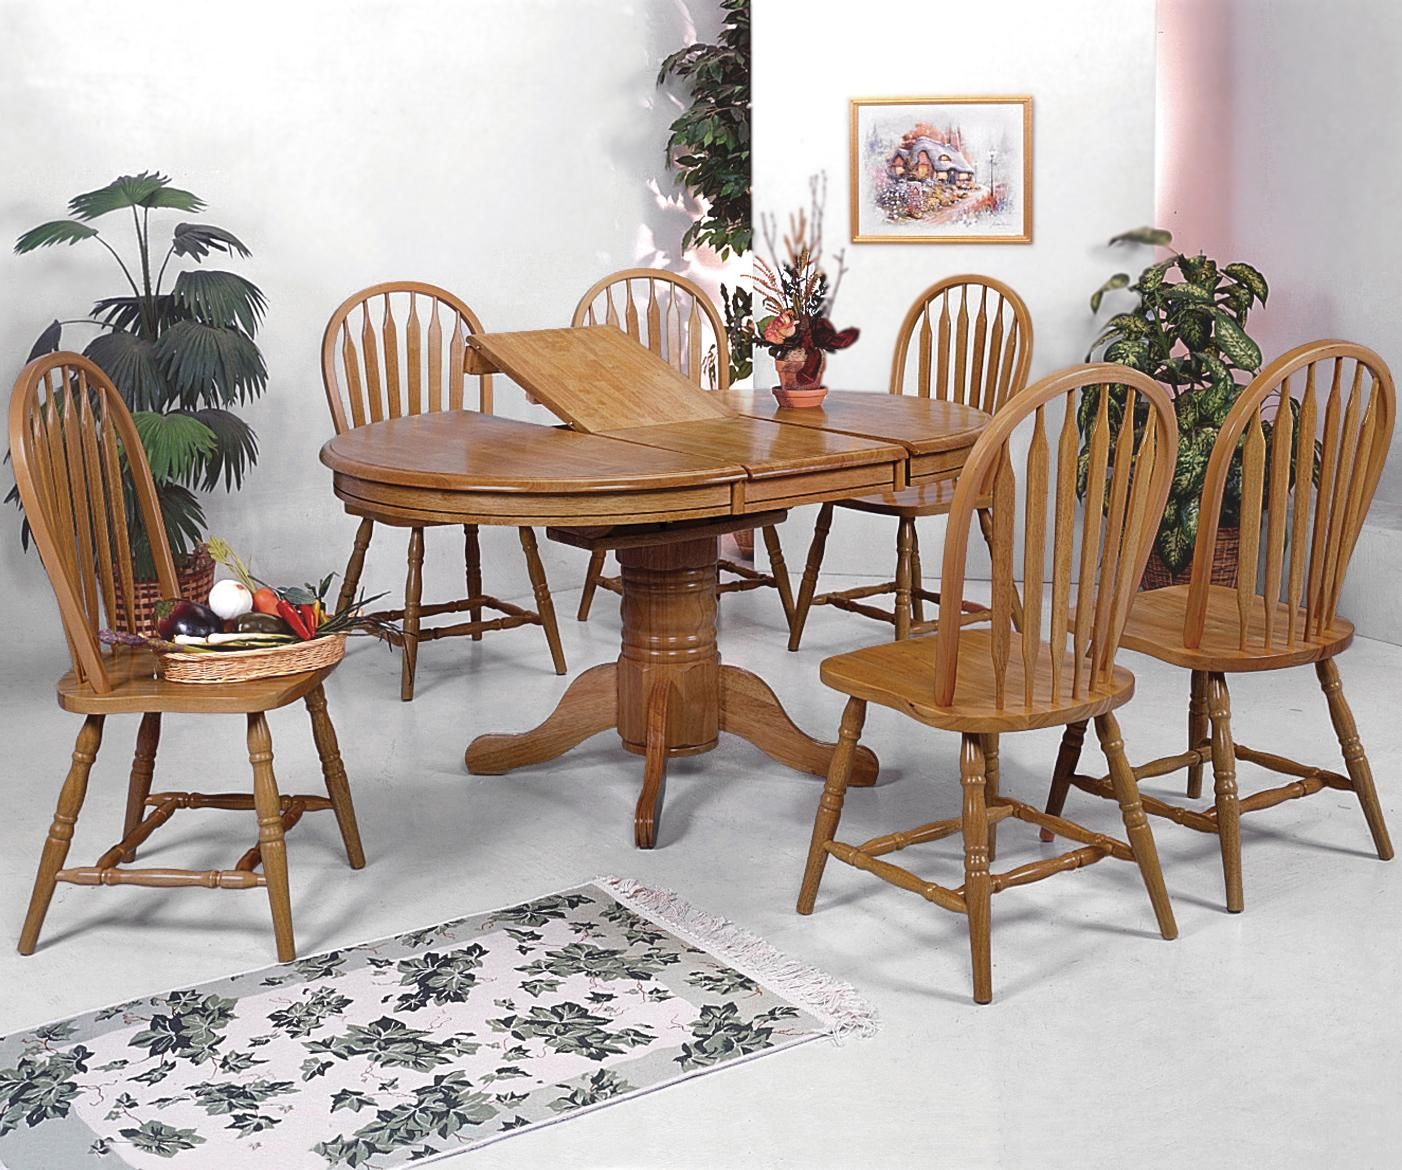 Windsor solid 7 piece oval dining table and side chairs by crown mark